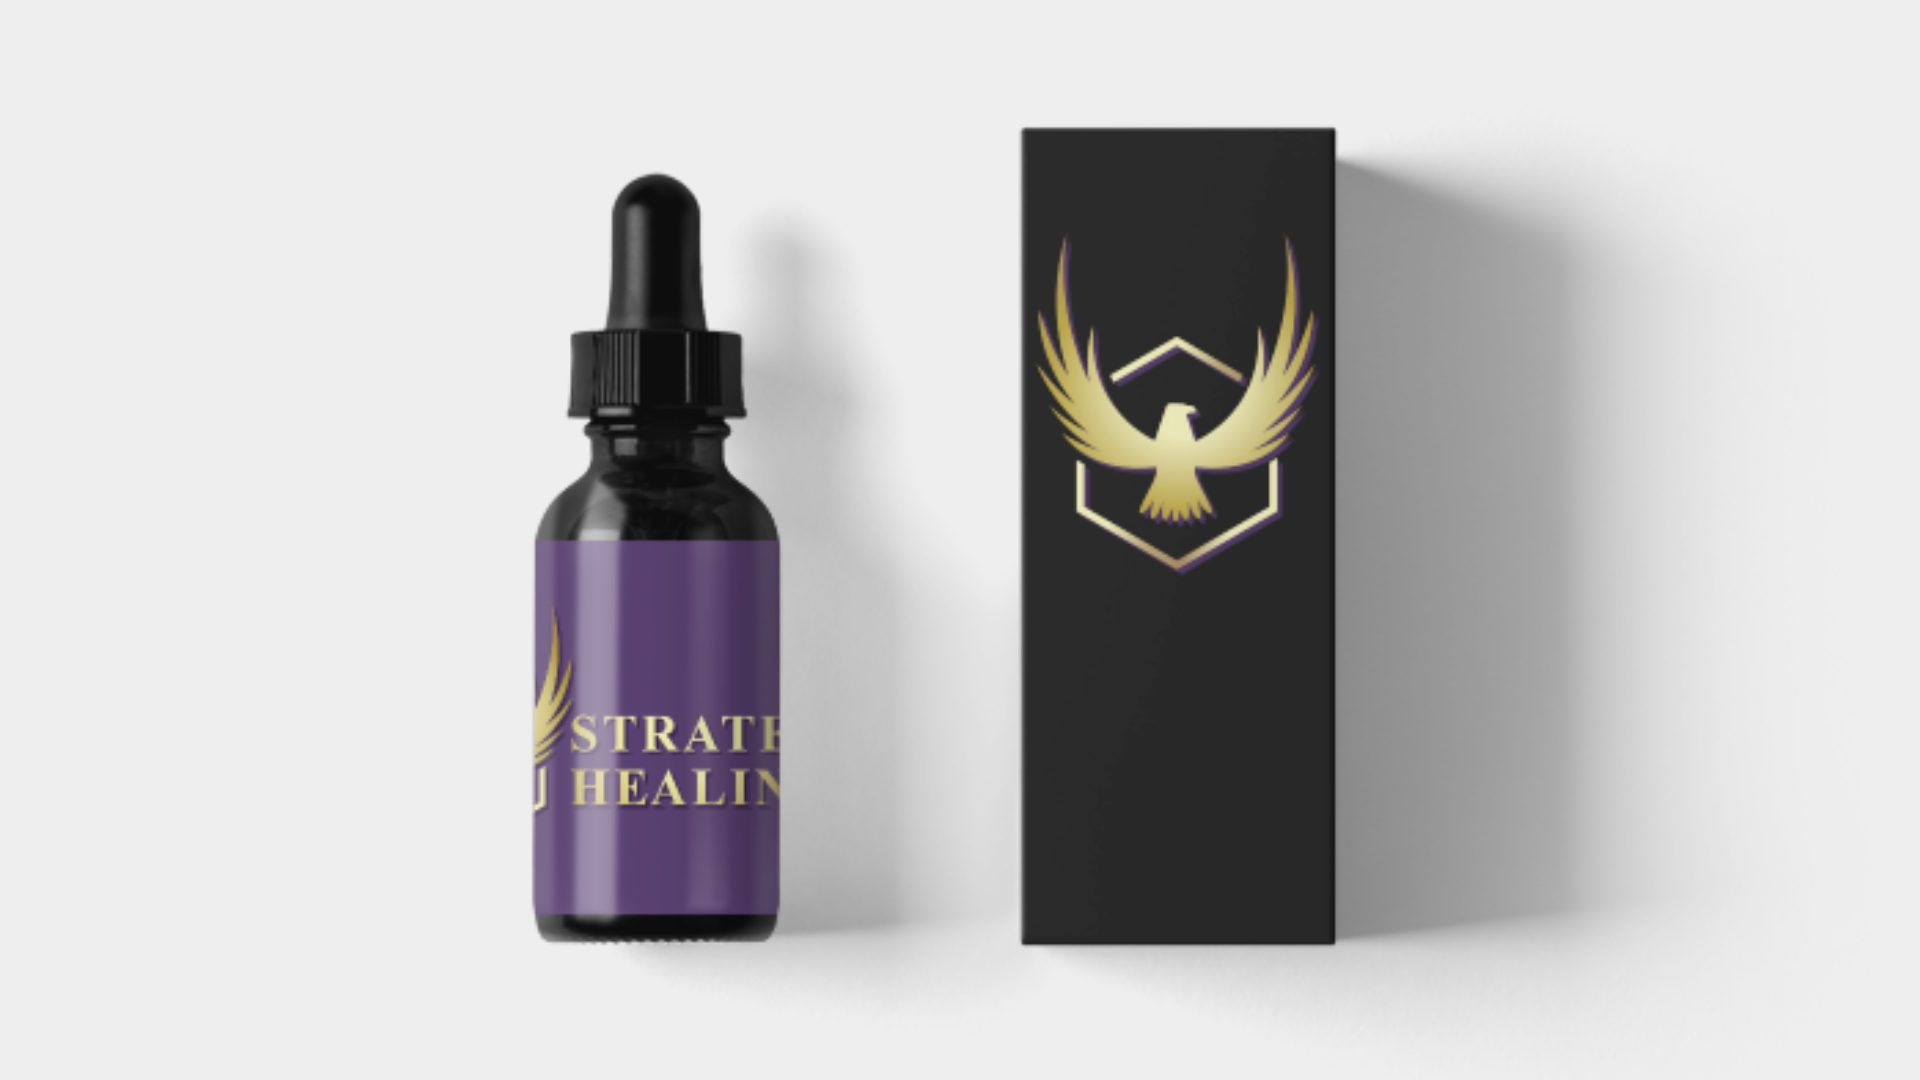 Strategic Healing - Eagle Logo Mockup 02